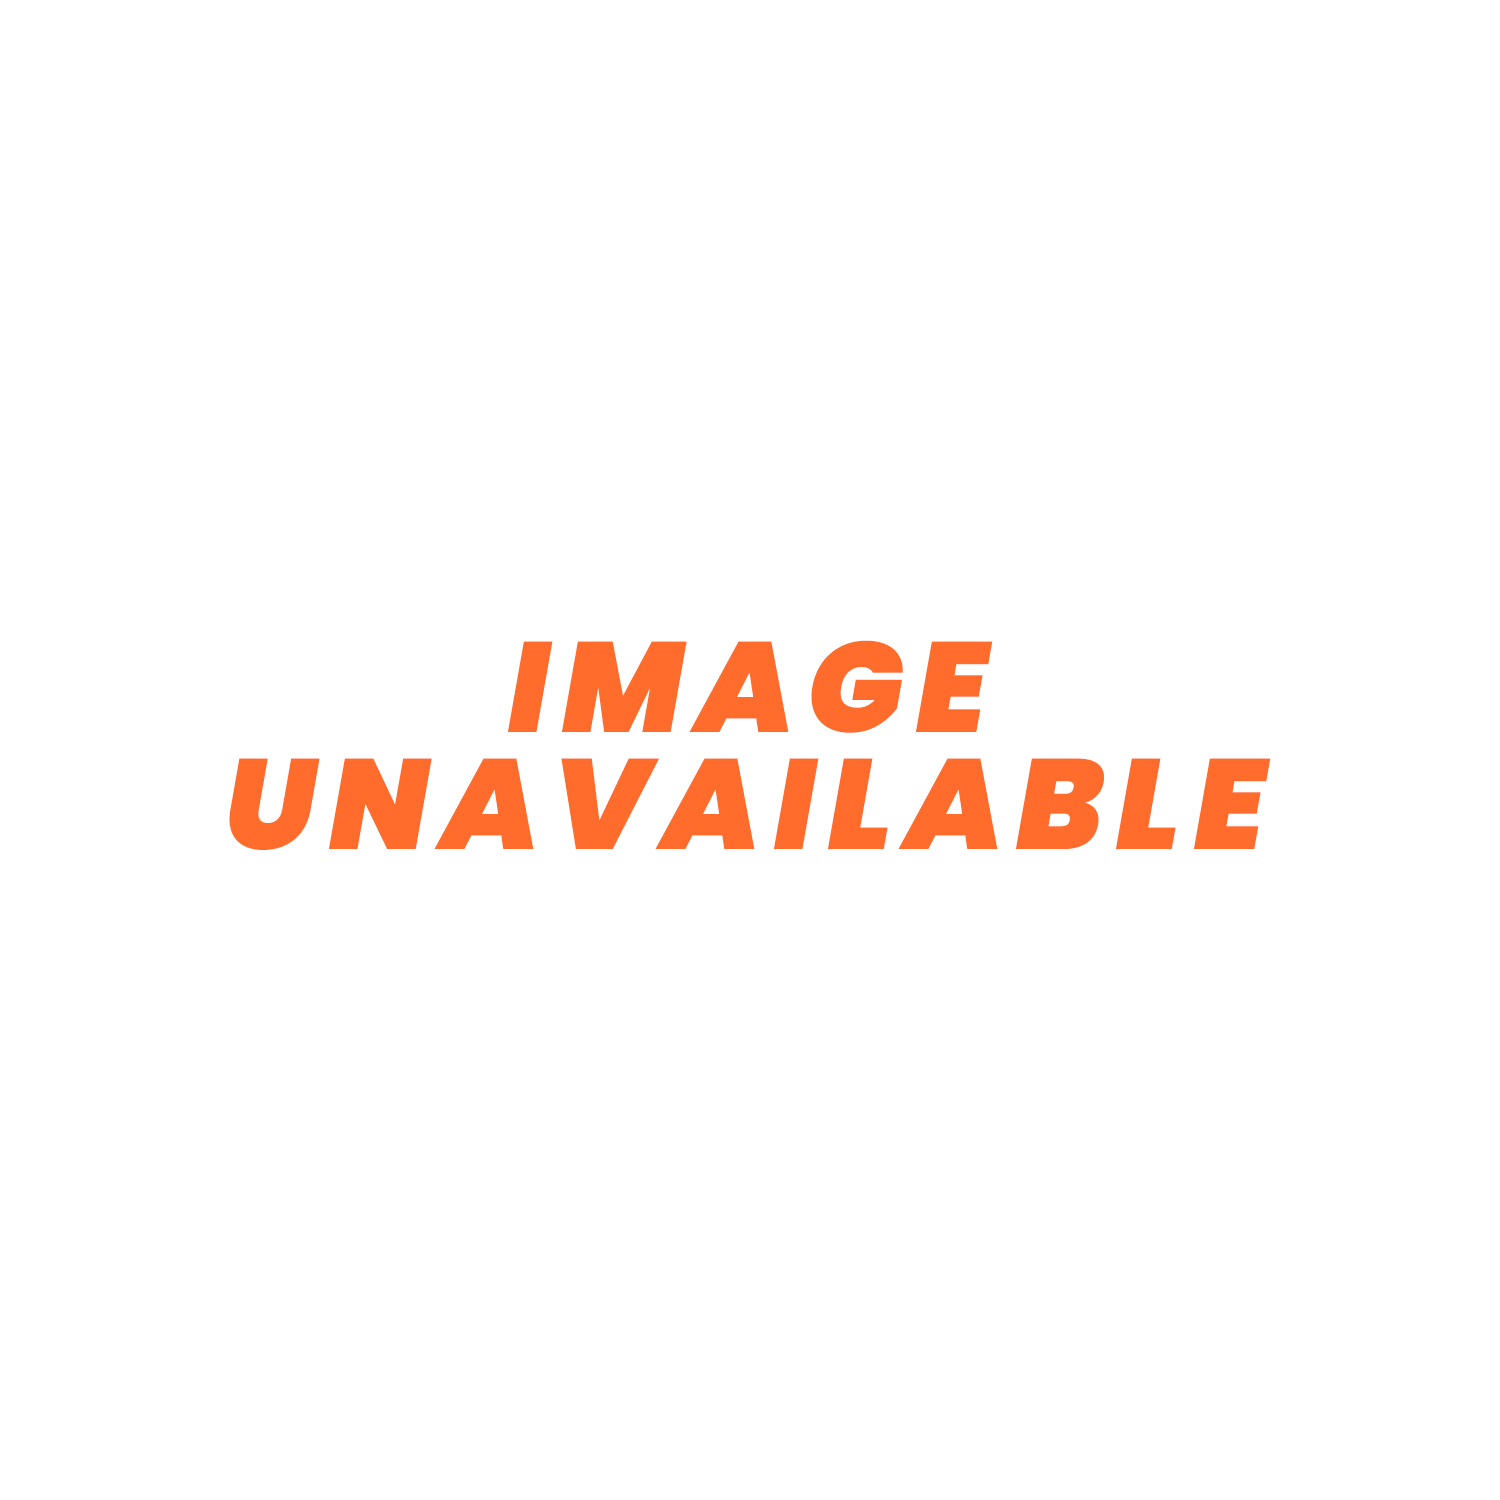 "SPAL Radiator Fan - 11.0"" (280mm) Pull VA09-BP8/C-54A 856cfm"